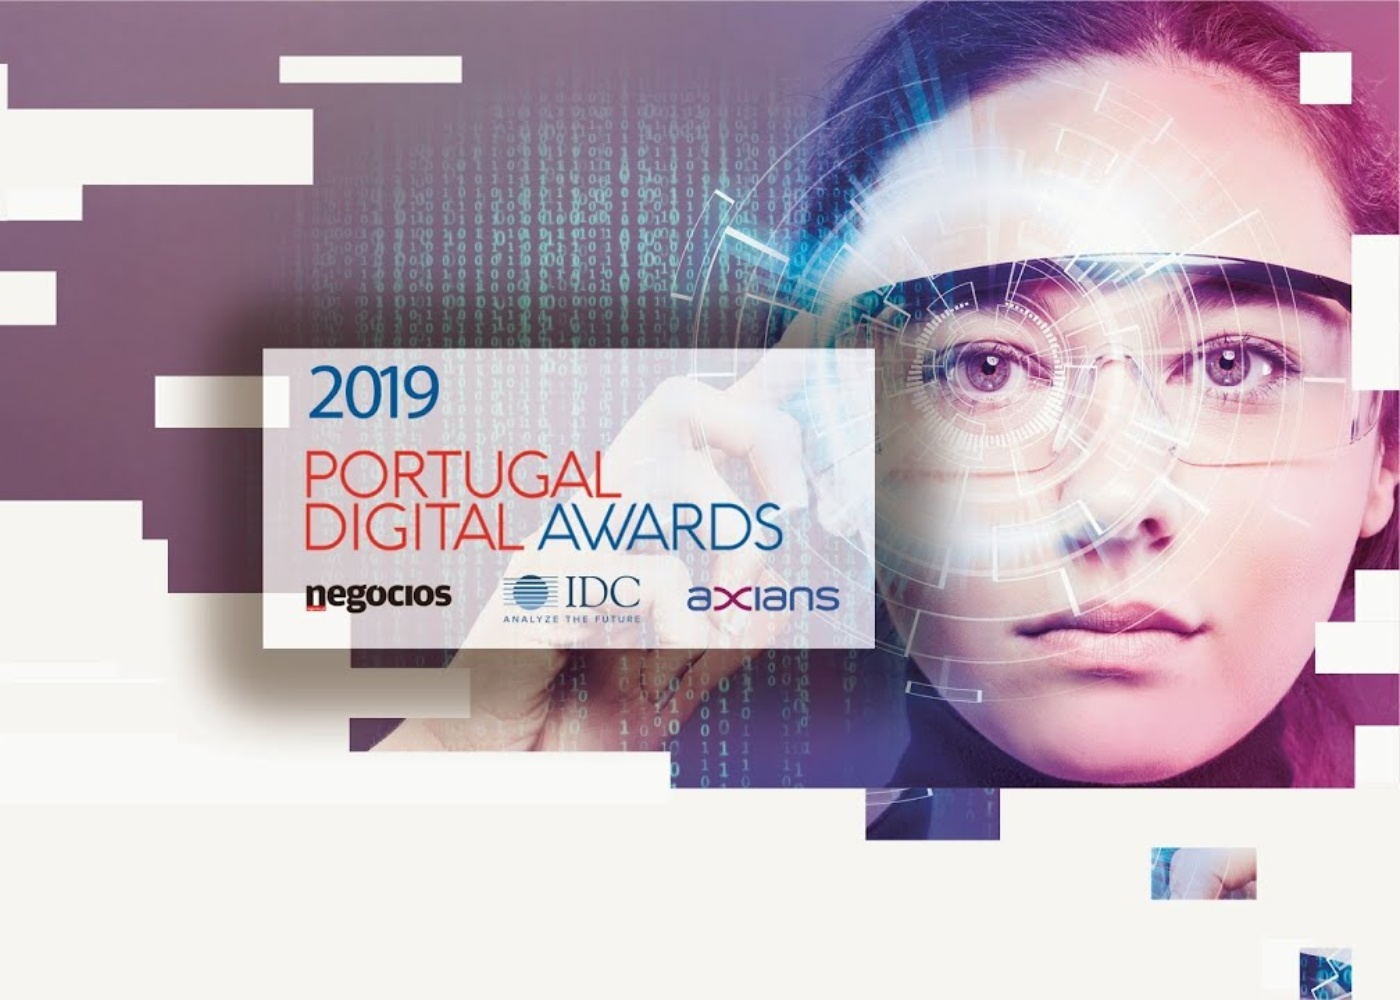 cartaz 2019 portugal digital awards